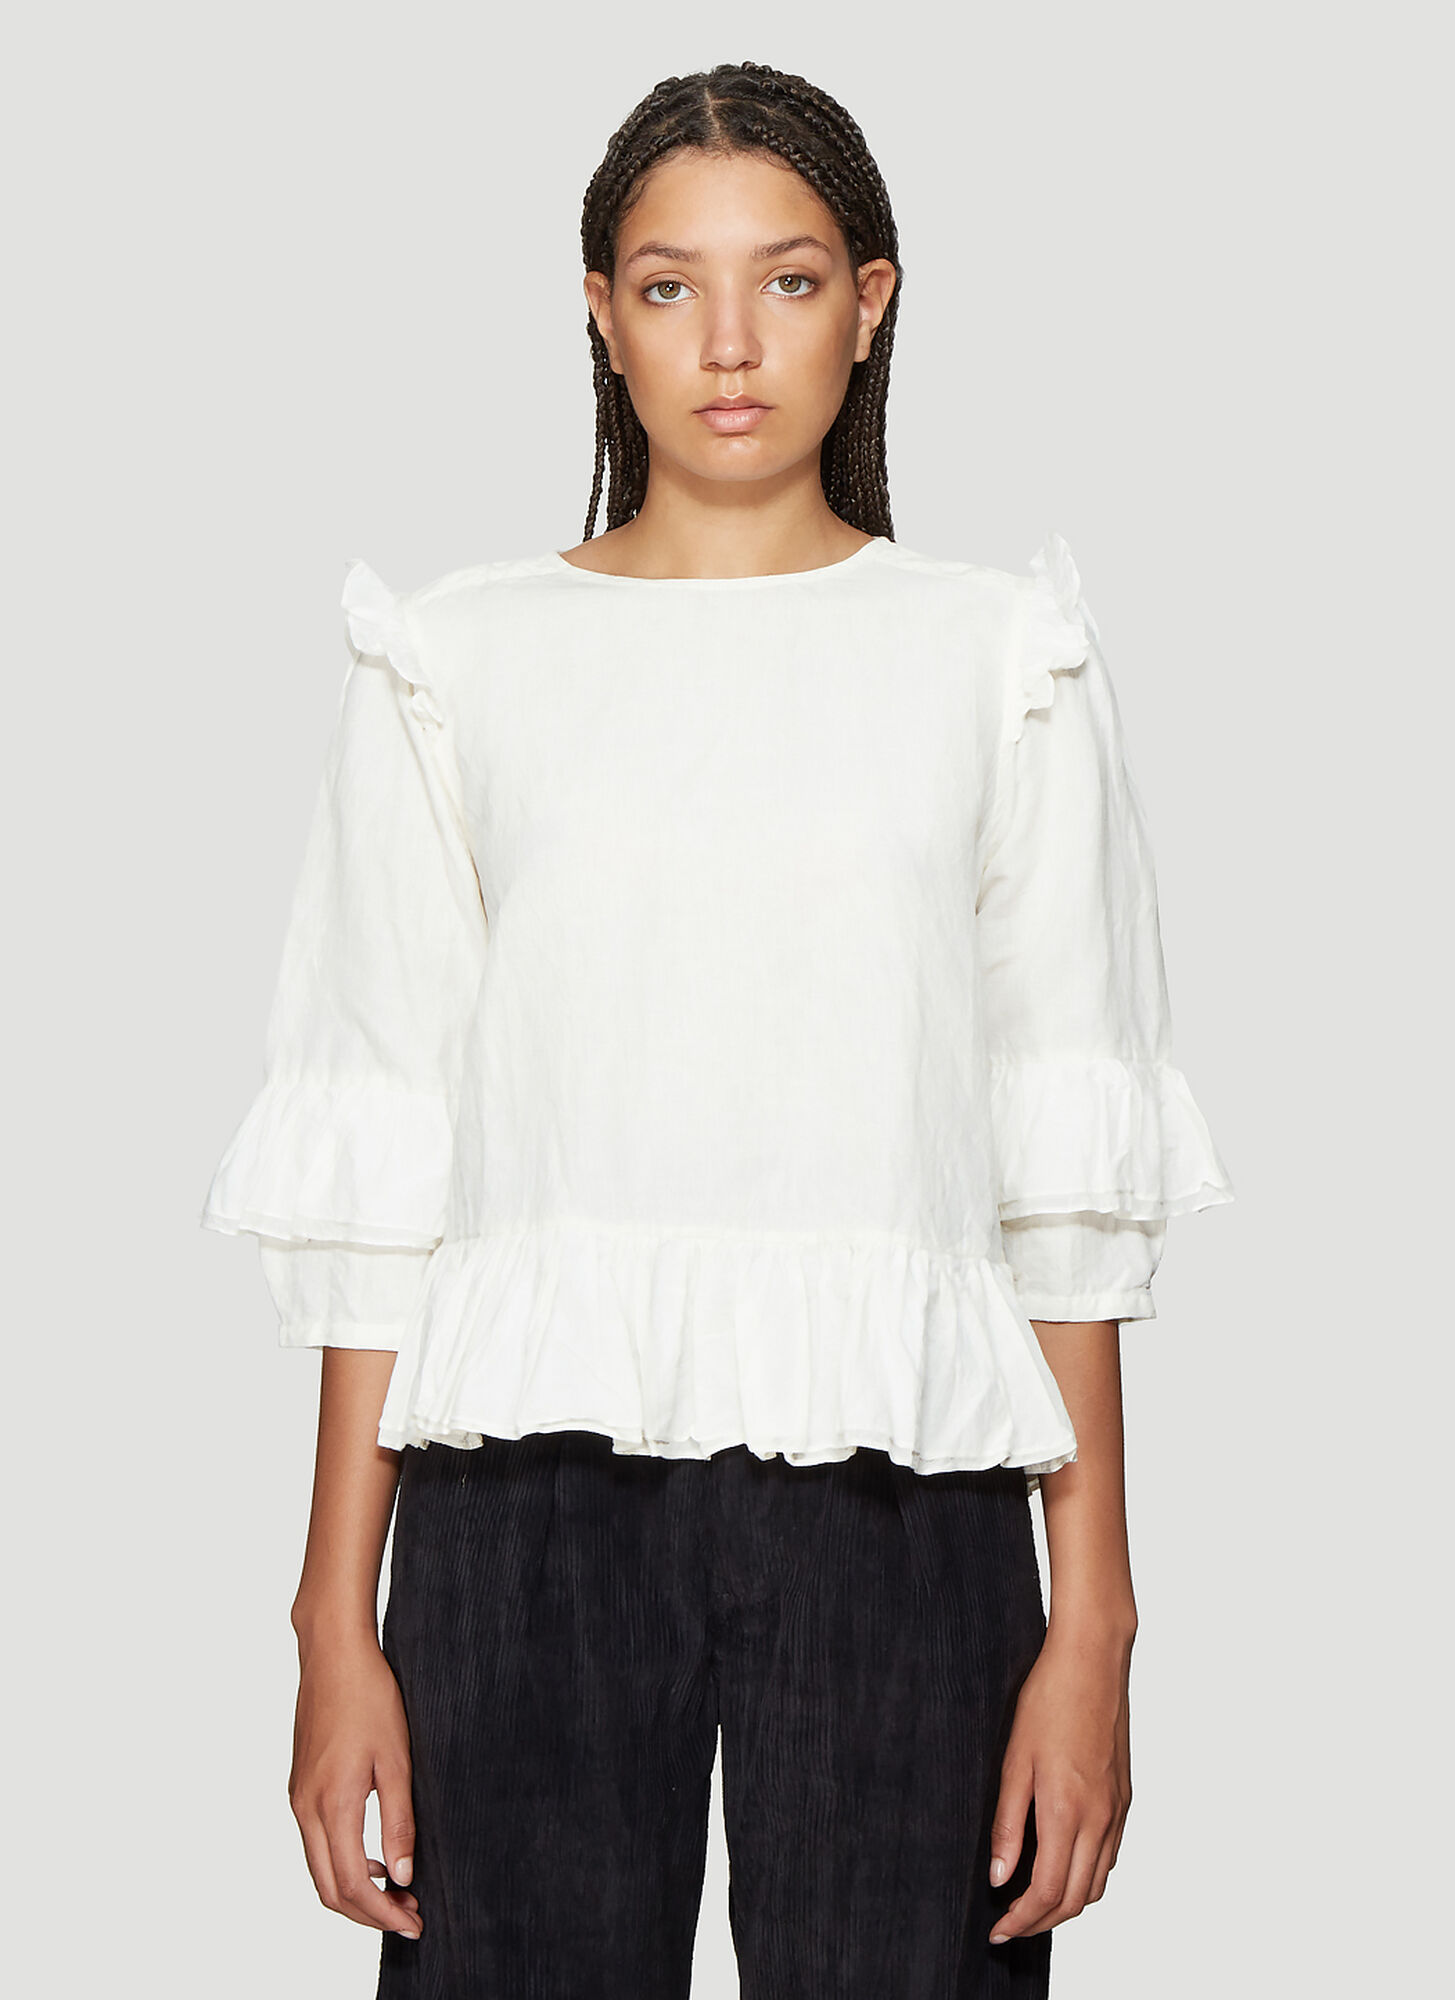 STORY mfg. Alma top in White